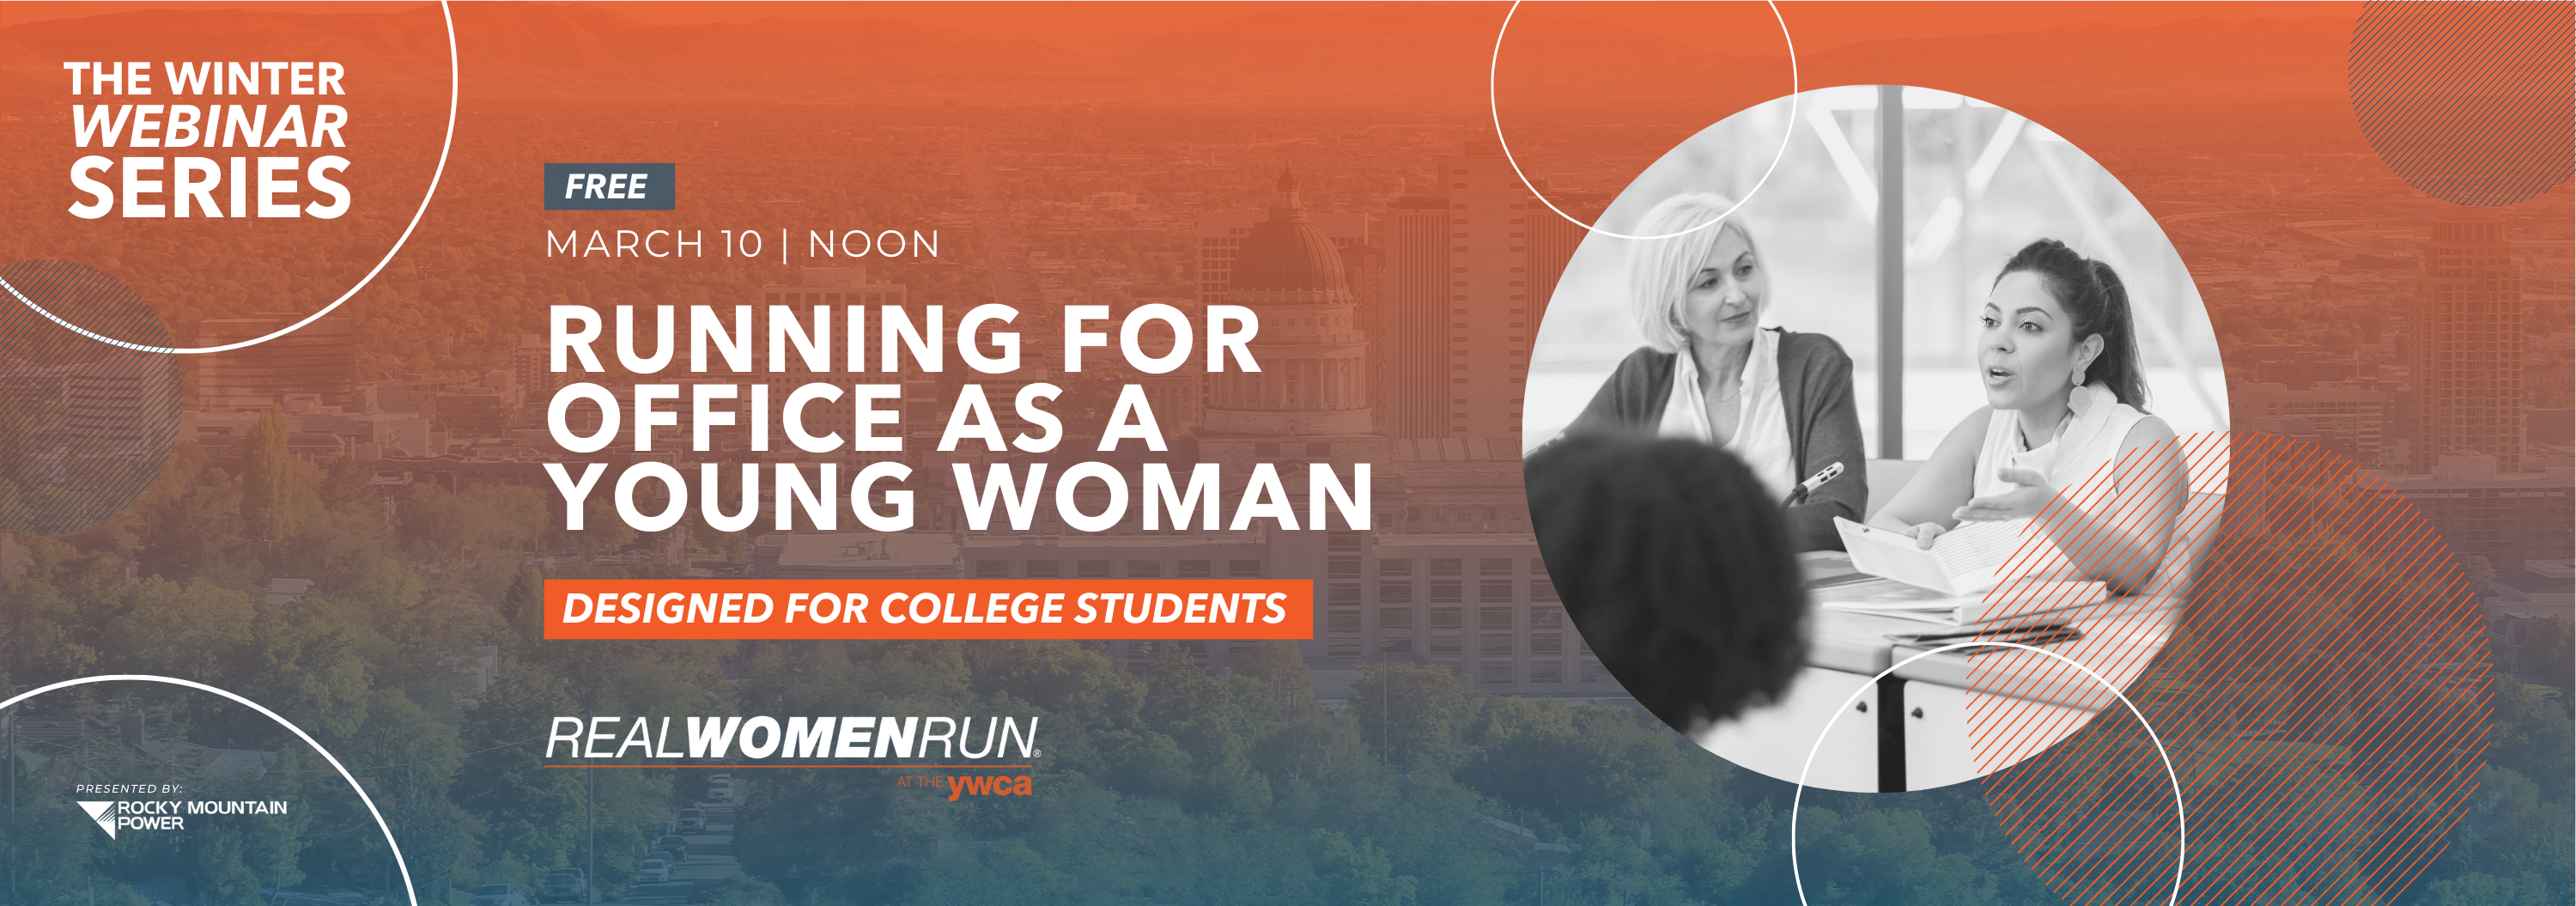 Running for Office as a Young Woman | Real Women Run® Winter Webinar Series @ VIA YOUTUBE